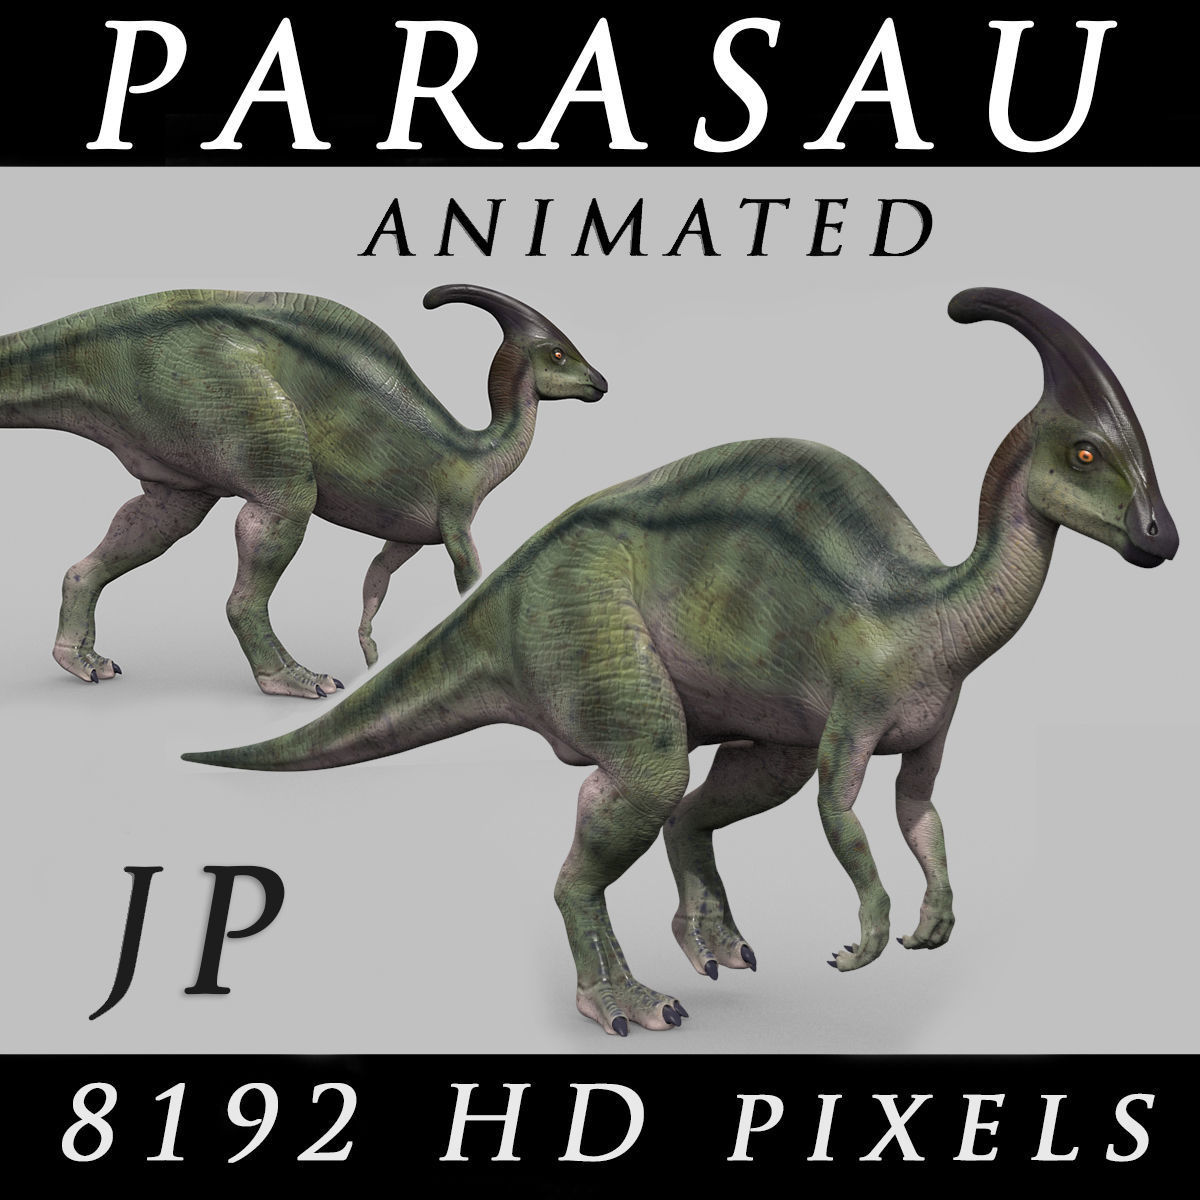 Parasaurolophus 8192 HD - 3d animated model